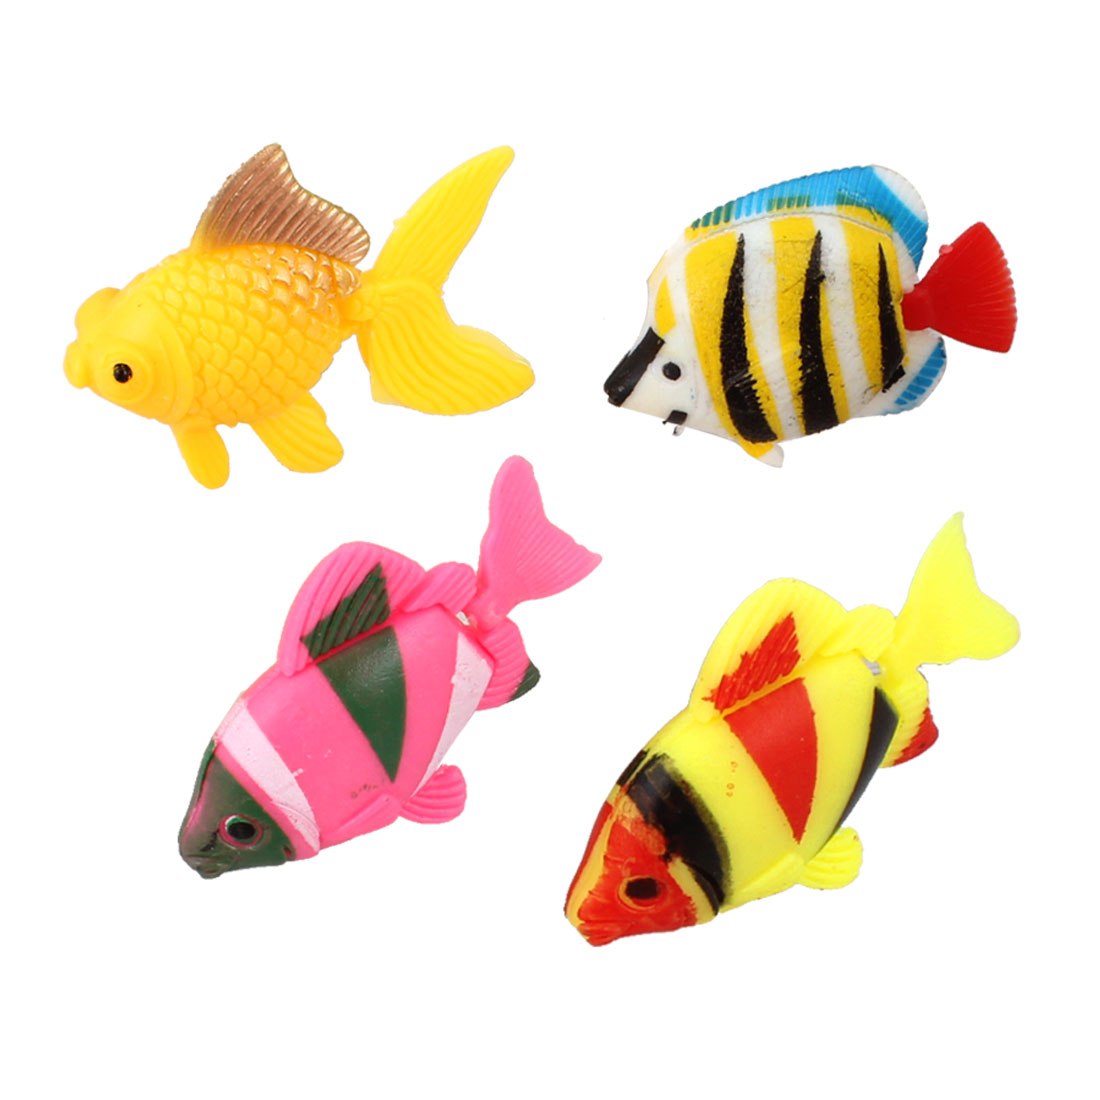 4 Pcs Multicolor Artificial Plastic Movable Tail Fishes for Fish Tank